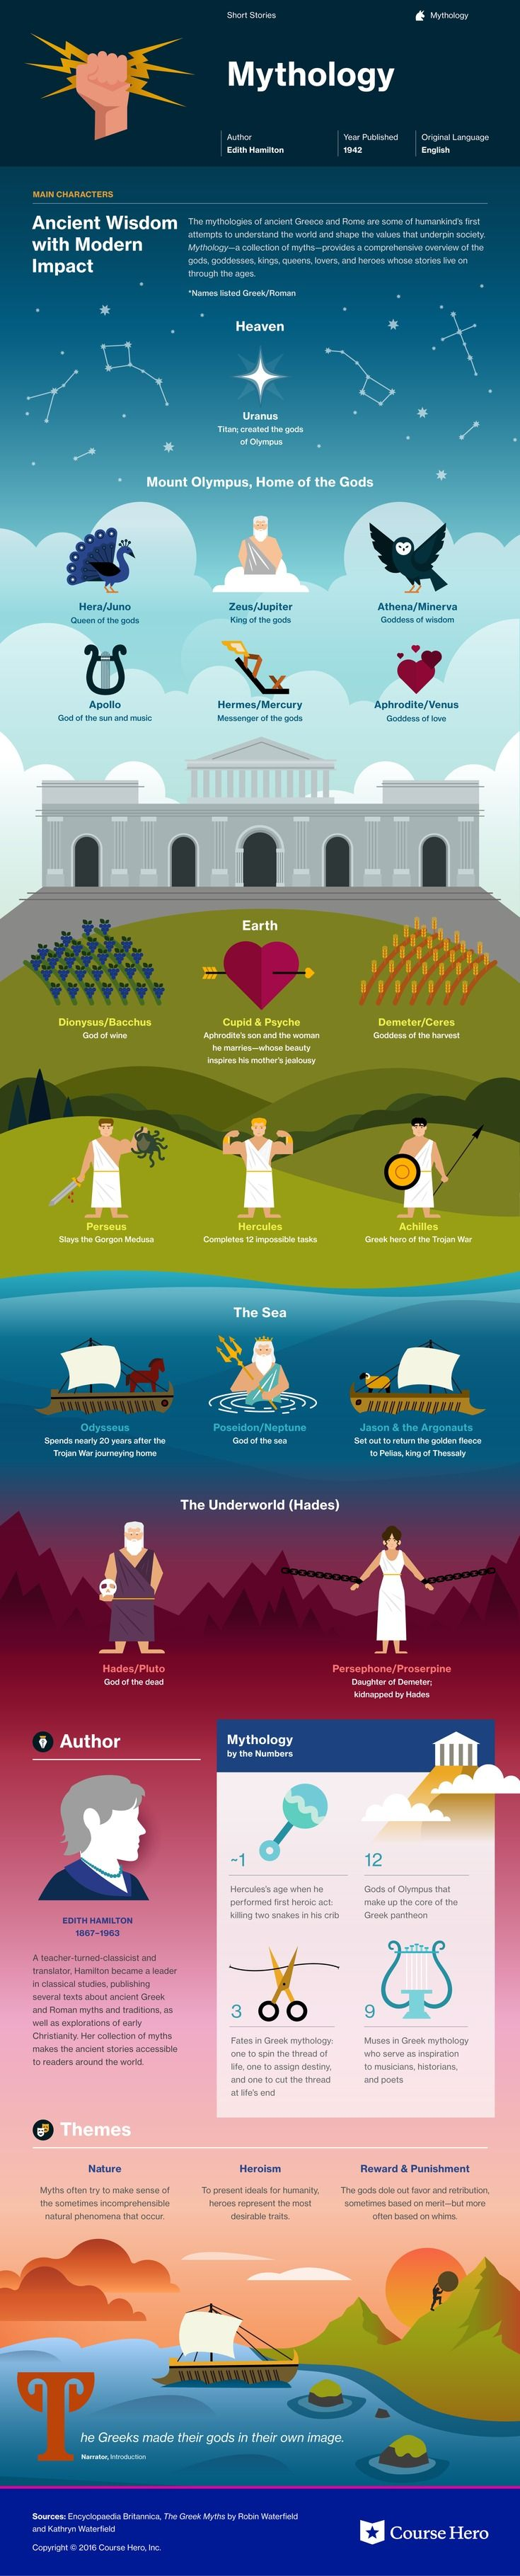 Mythology | Course Hero Infographic